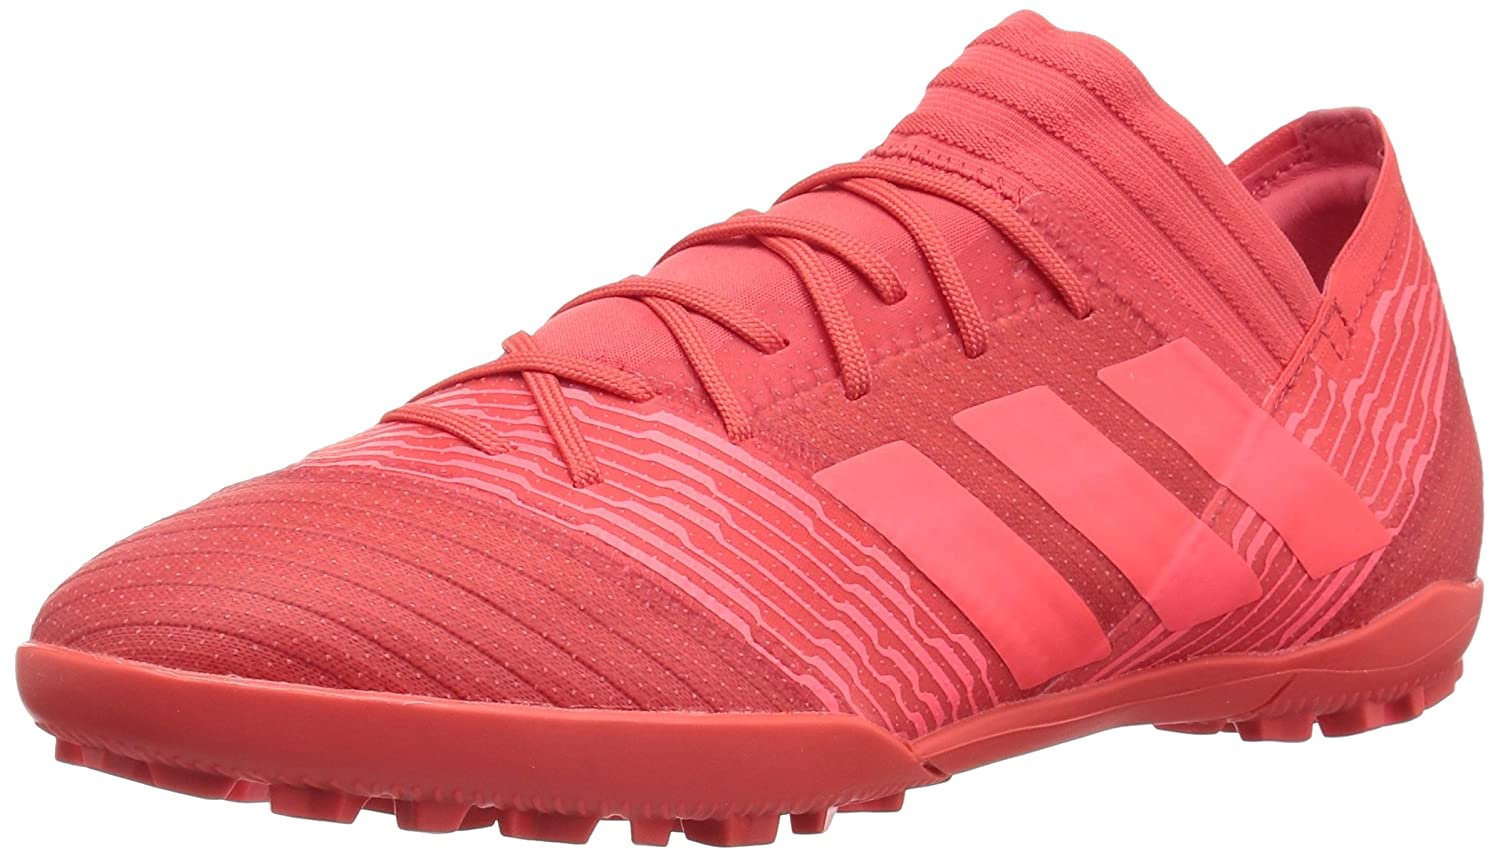 adidas Performance Men's Nemeziz Tango 17.3 TF B0714BDQLQ 10.5 D(M) US|Real Coral/Red Zest/Core Black